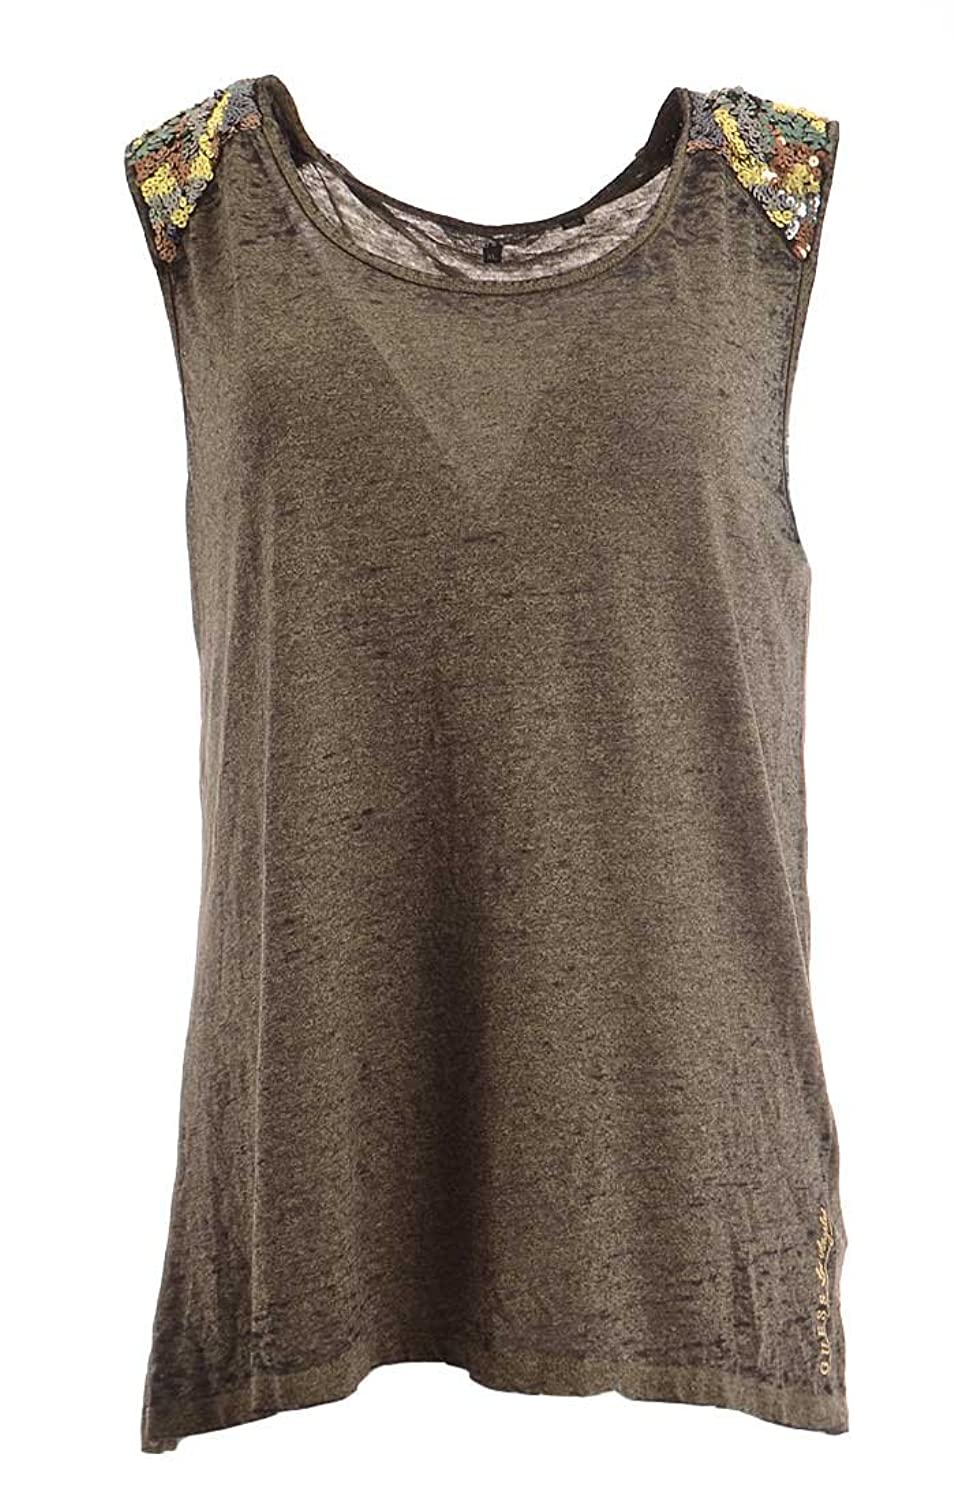 Guess Women's Sequin Shoulder Knit Leonu Top X-Large Light Green Black Heather